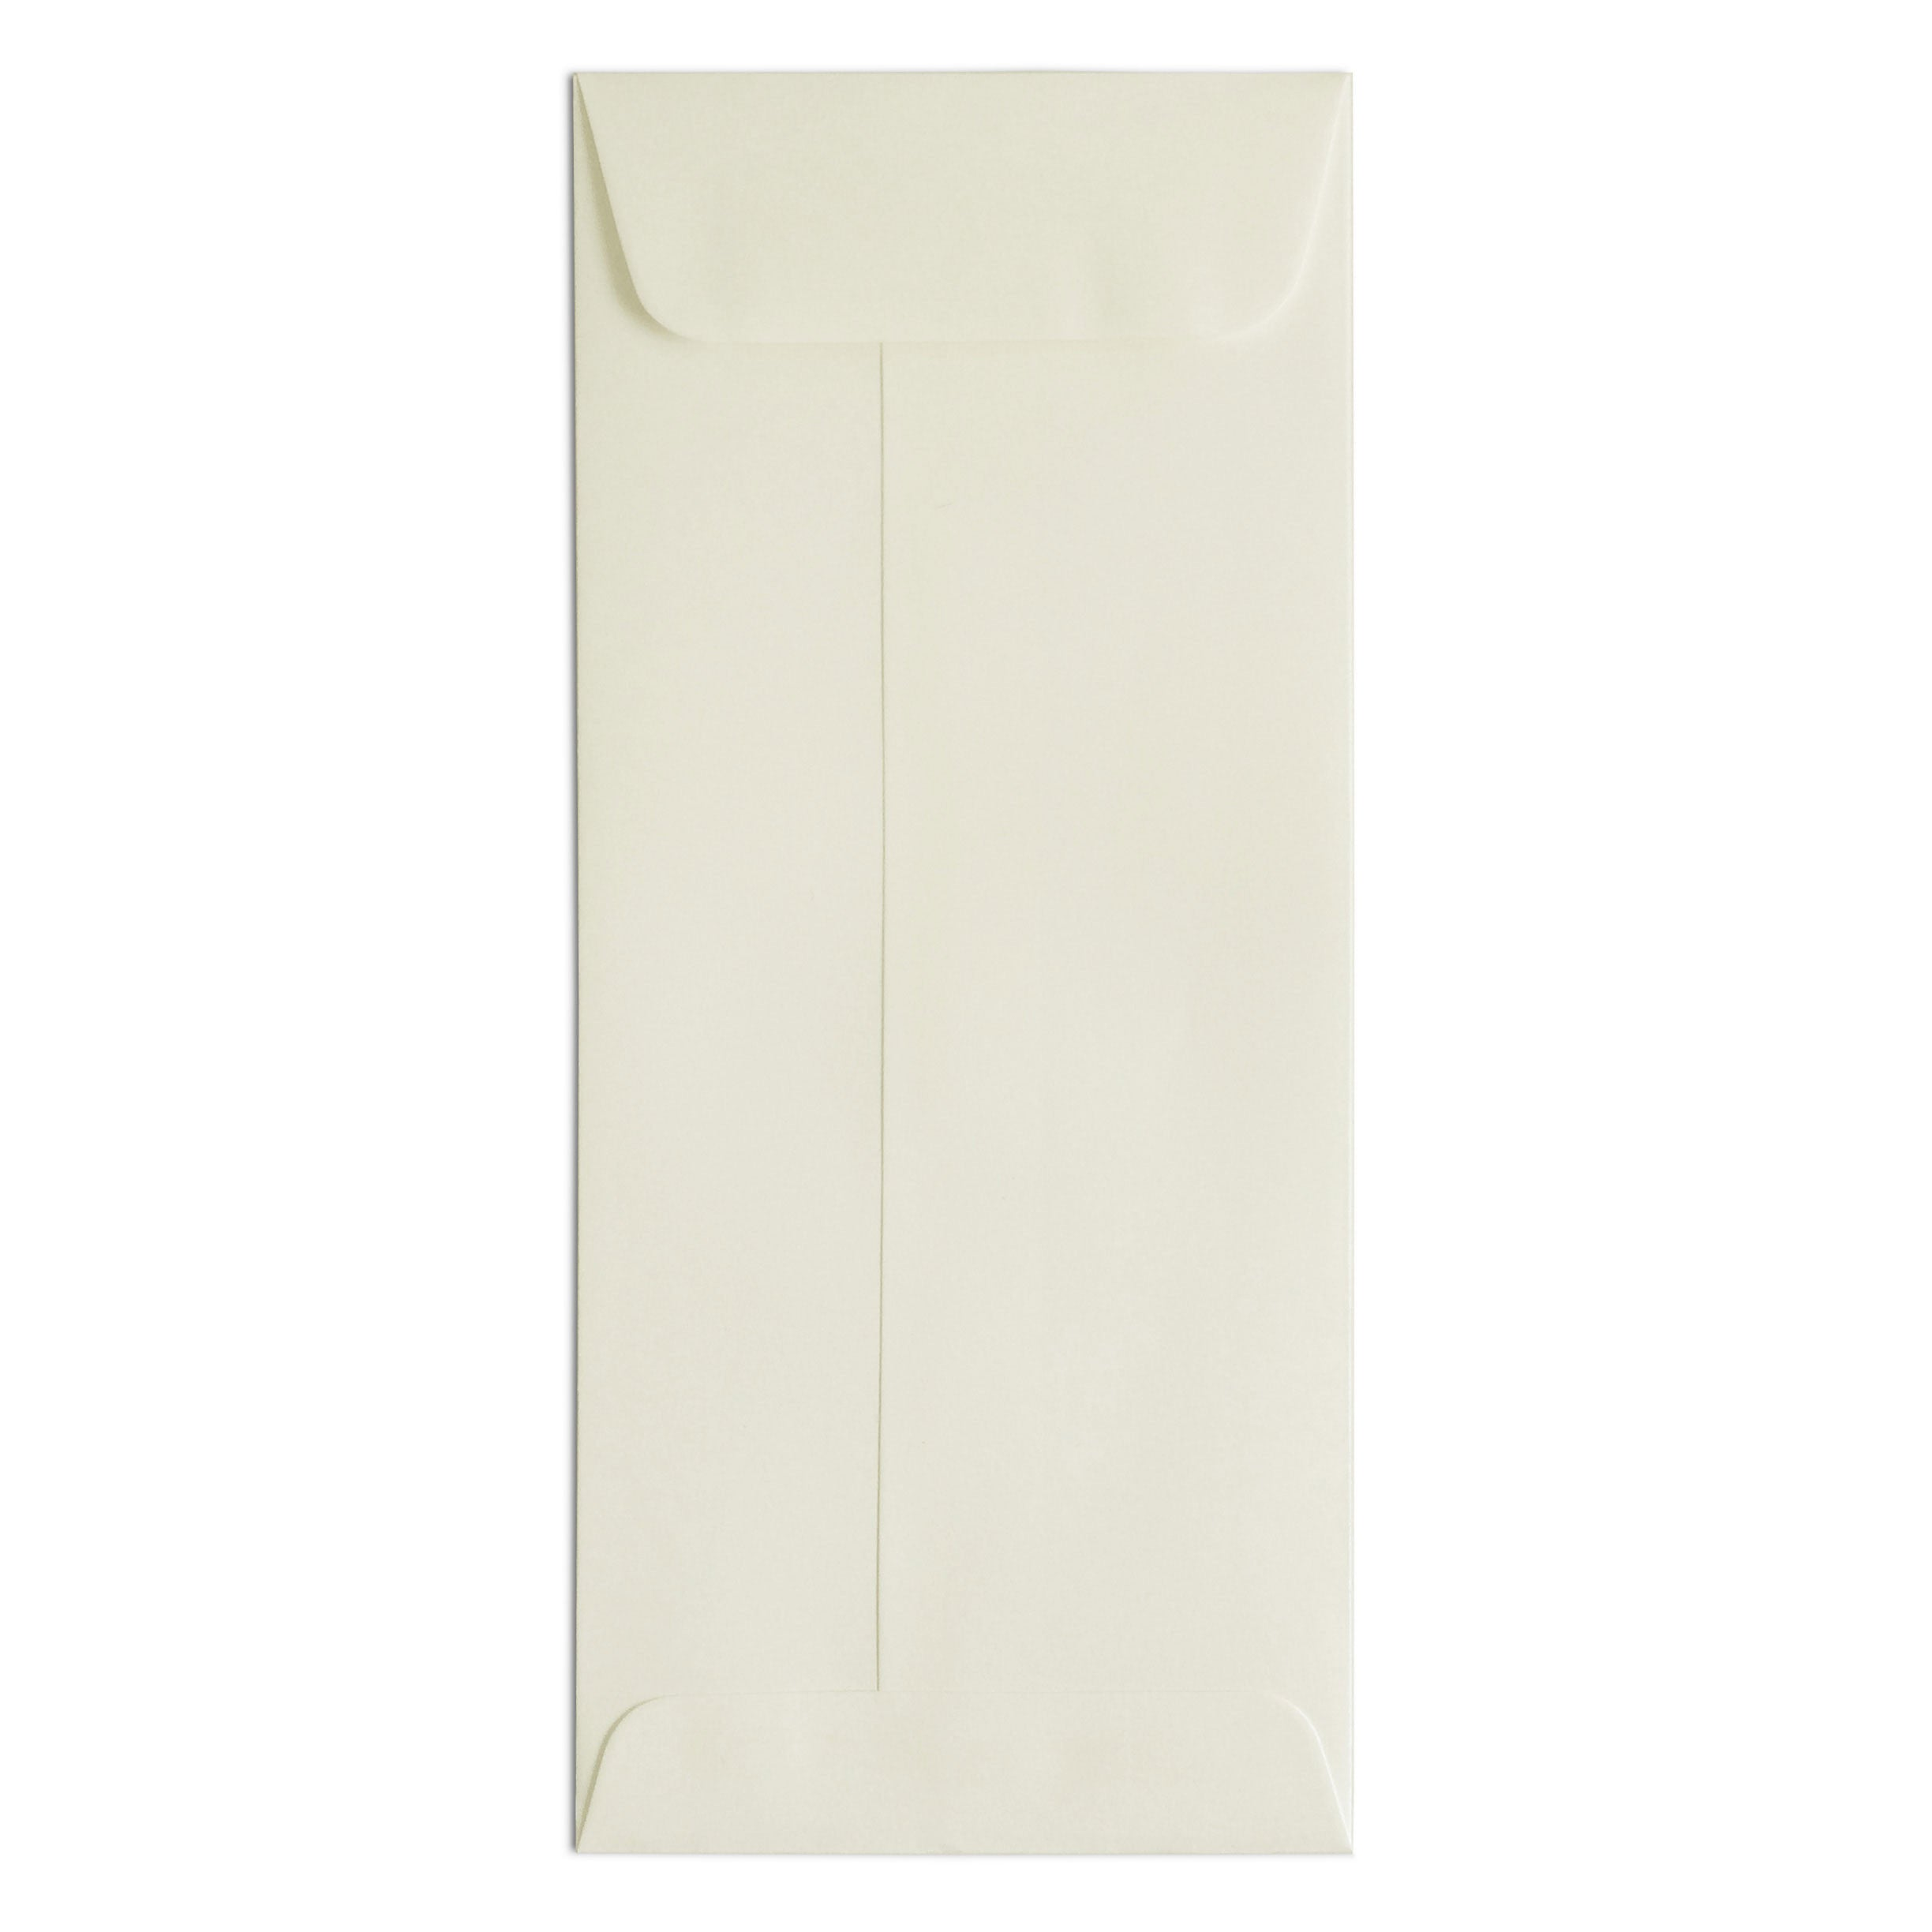 #10 Business Envelope Ivory